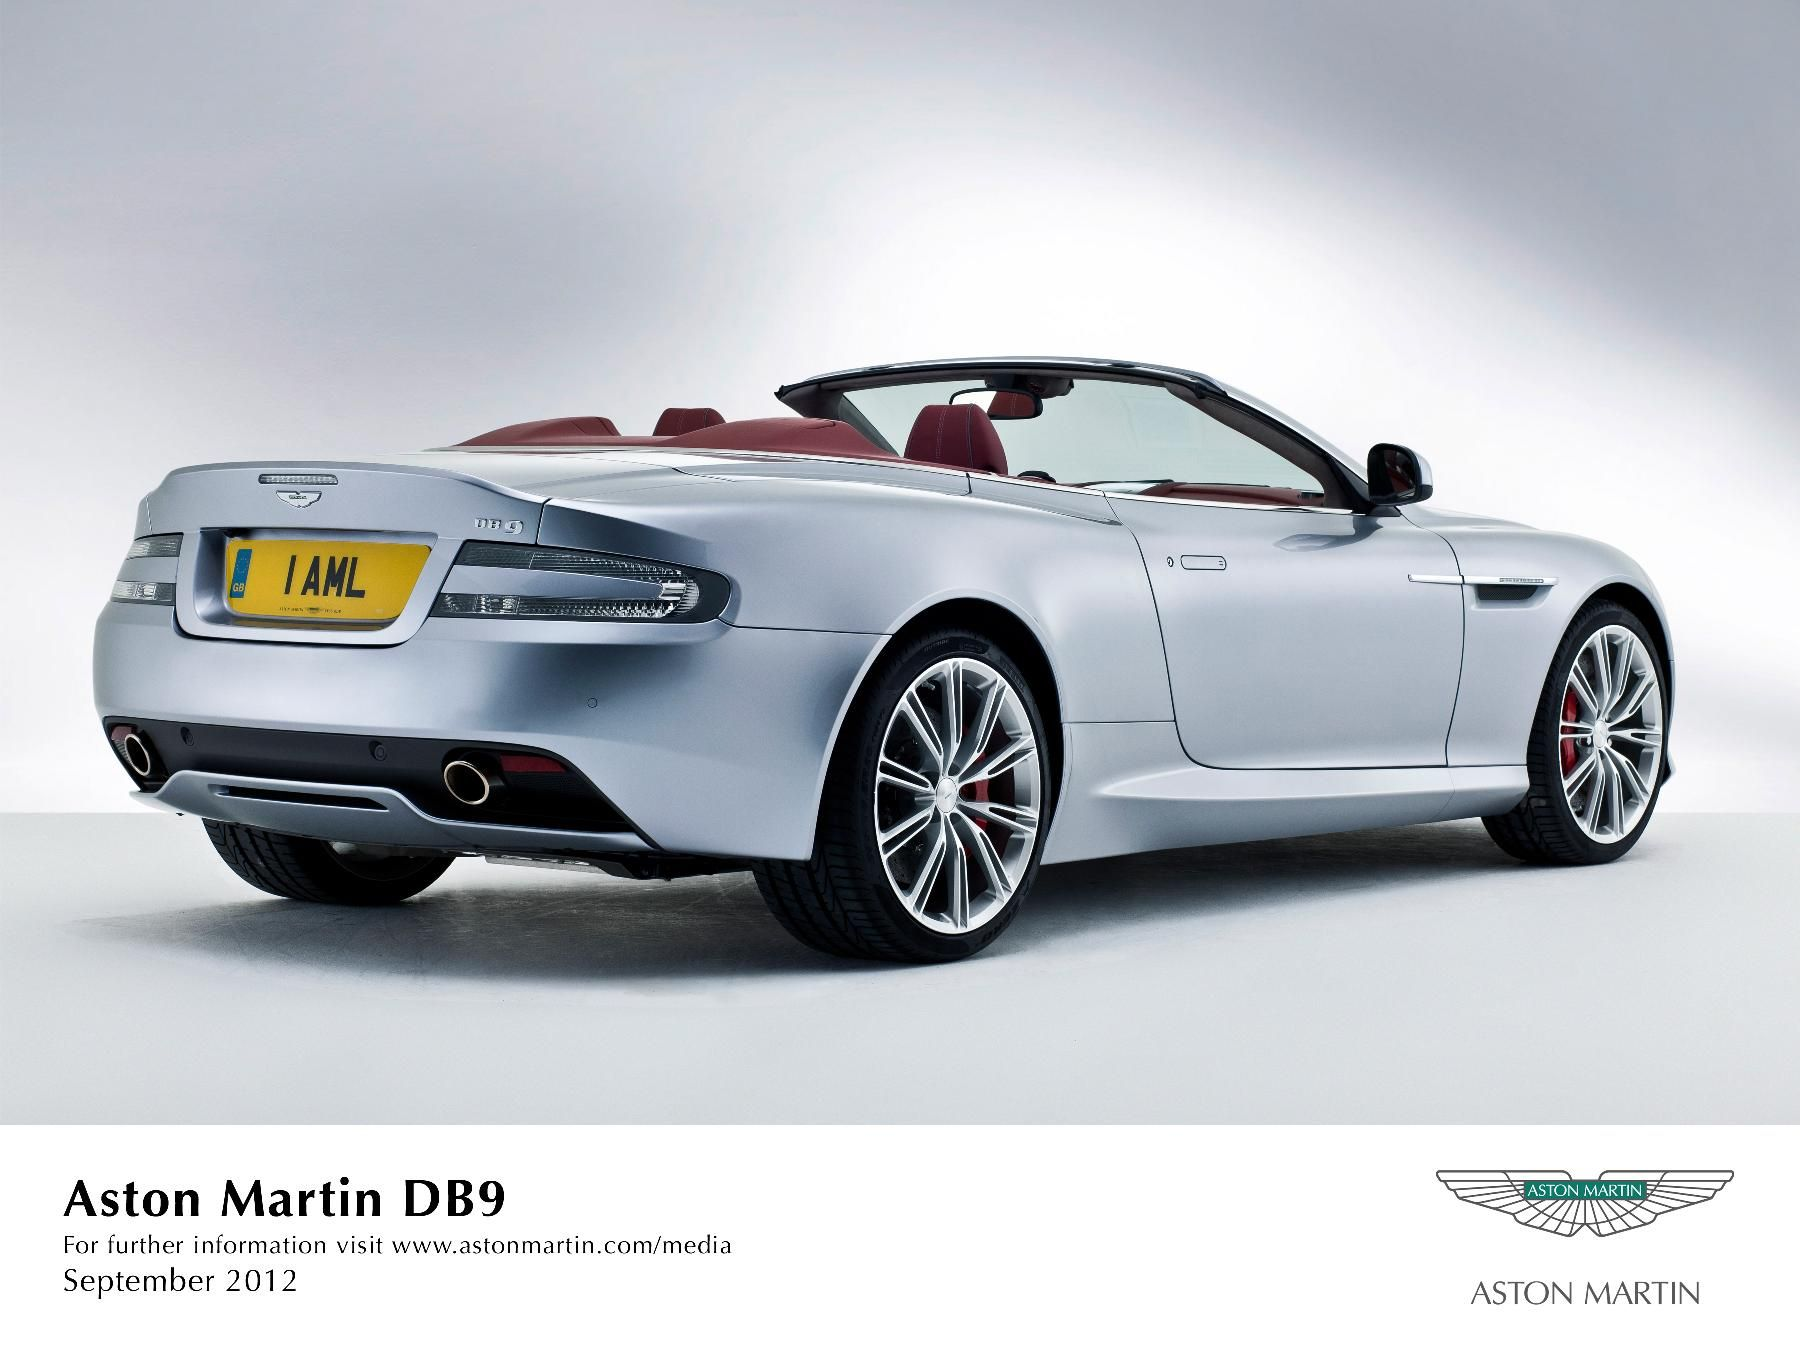 Aston Martin Db9 The Best Of British In A Sports Gt